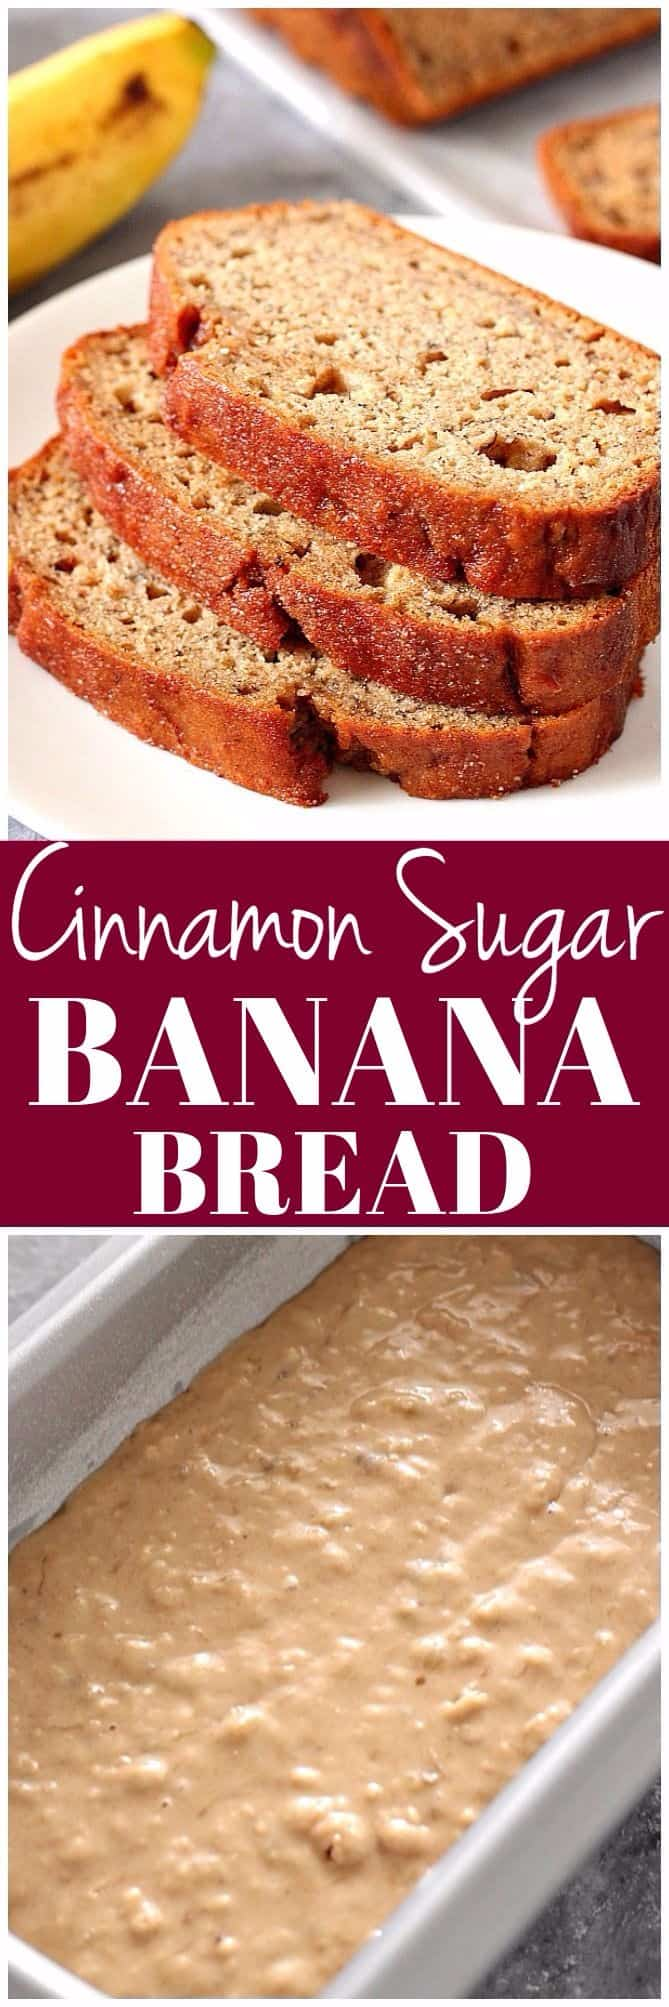 cinnamon sugar banana bread recipe long2a Cinnamon Sugar Banana Bread Recipe